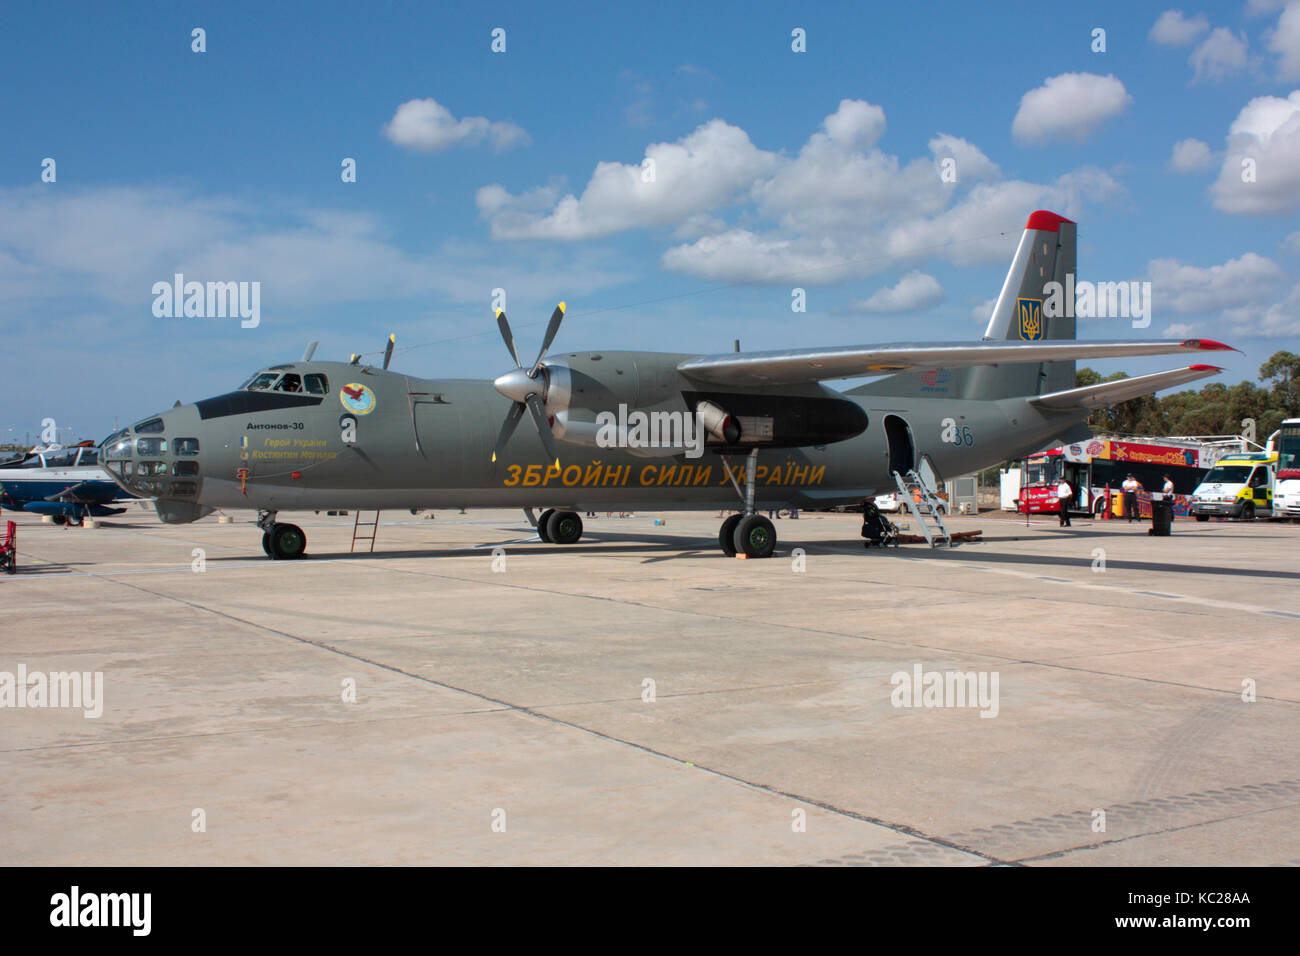 Antonov An-30 'Open Skies' aircraft of the Ukrainian Armed Forces - Stock Image